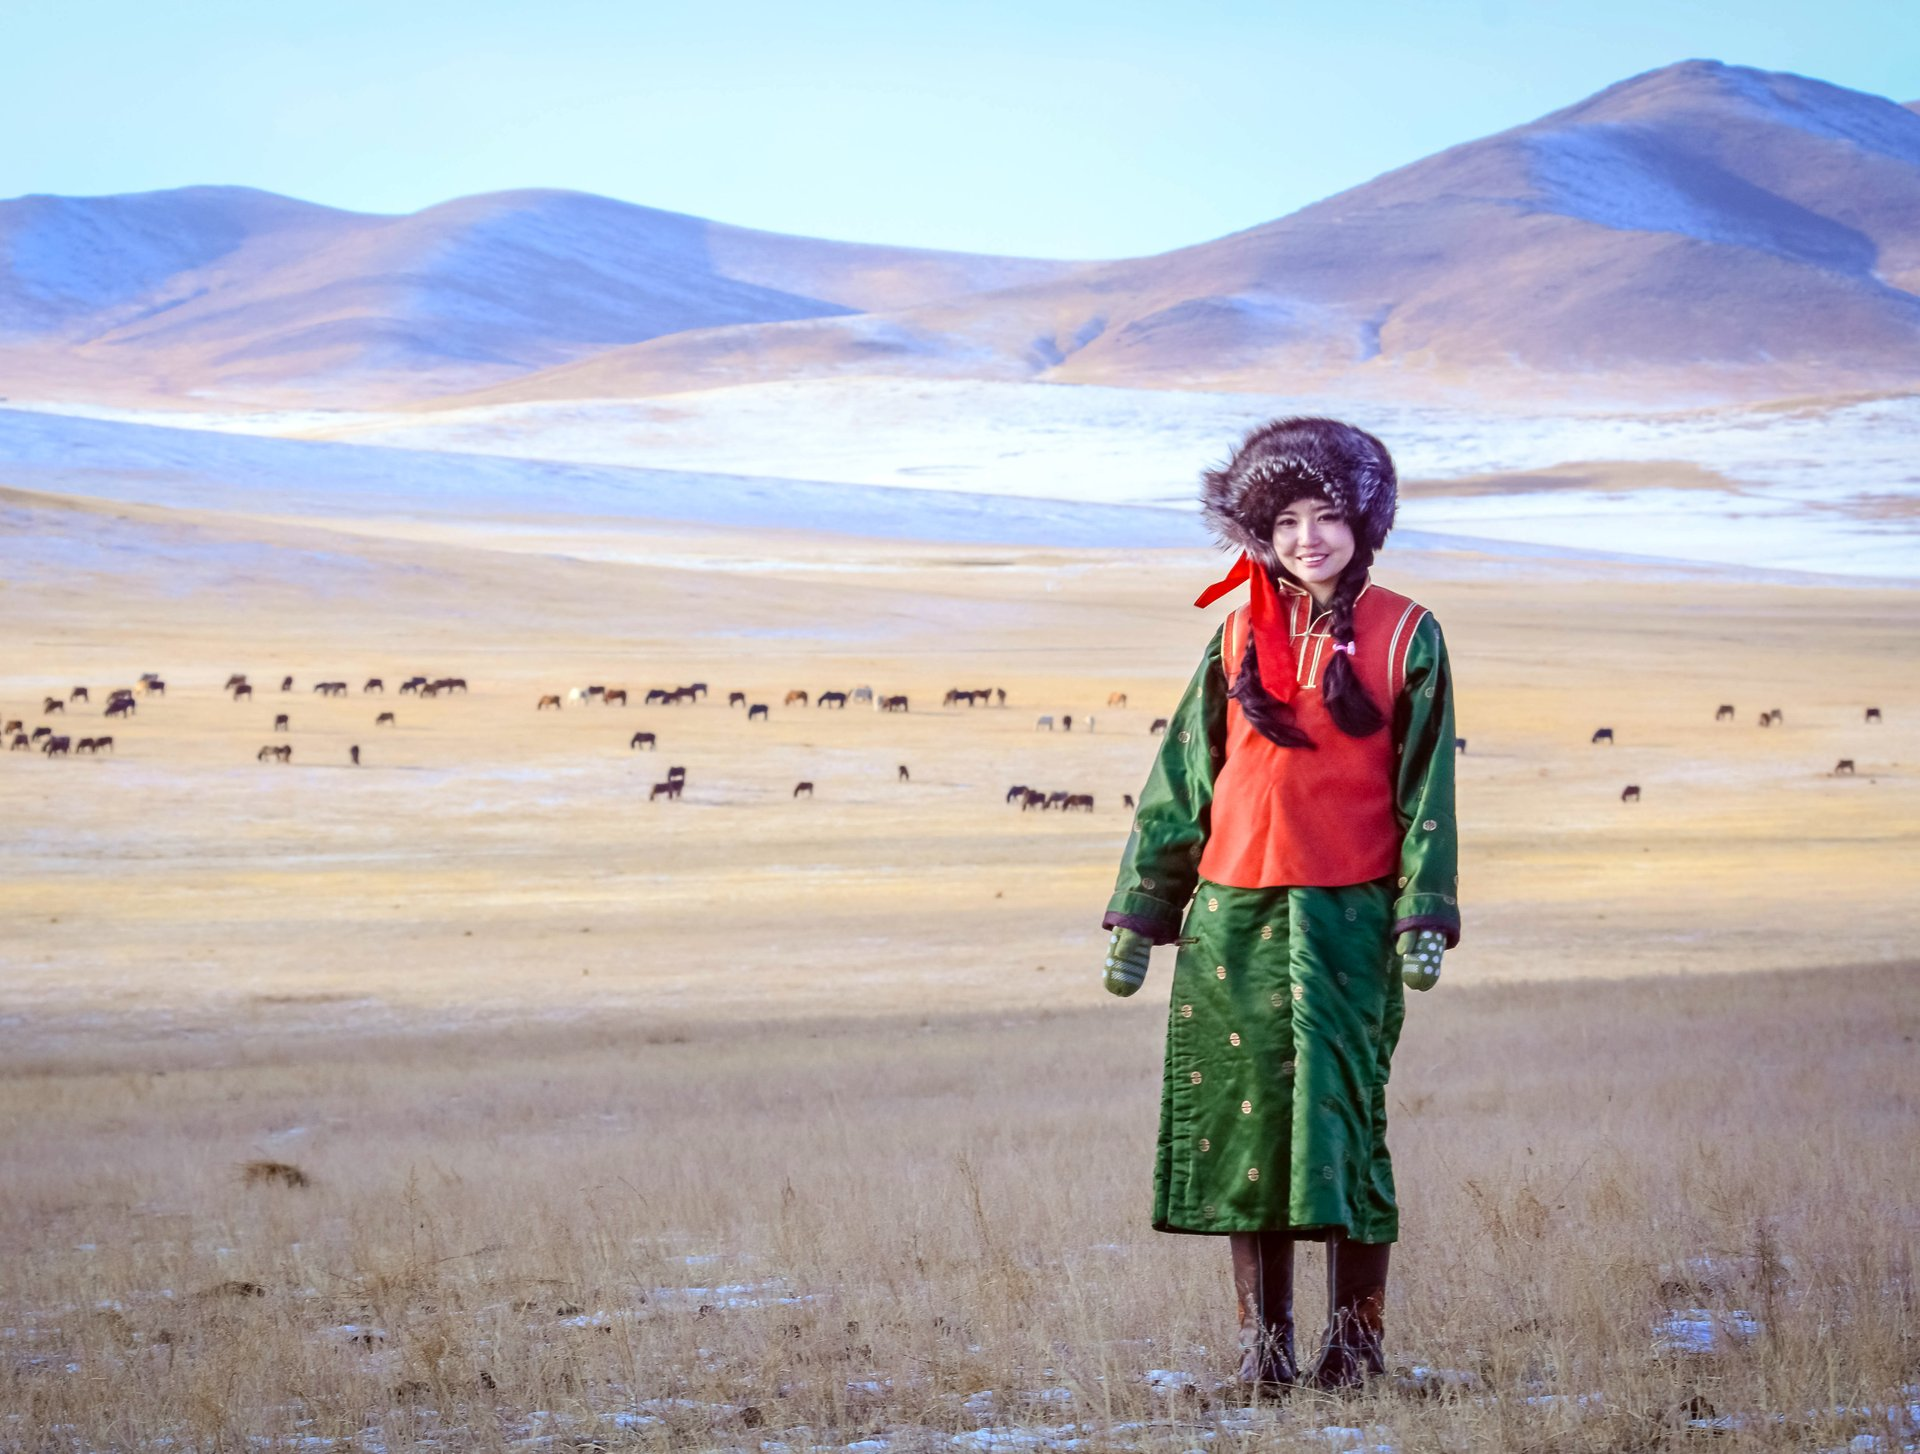 Winter Clothing in Mongolia 2020 - Best Time